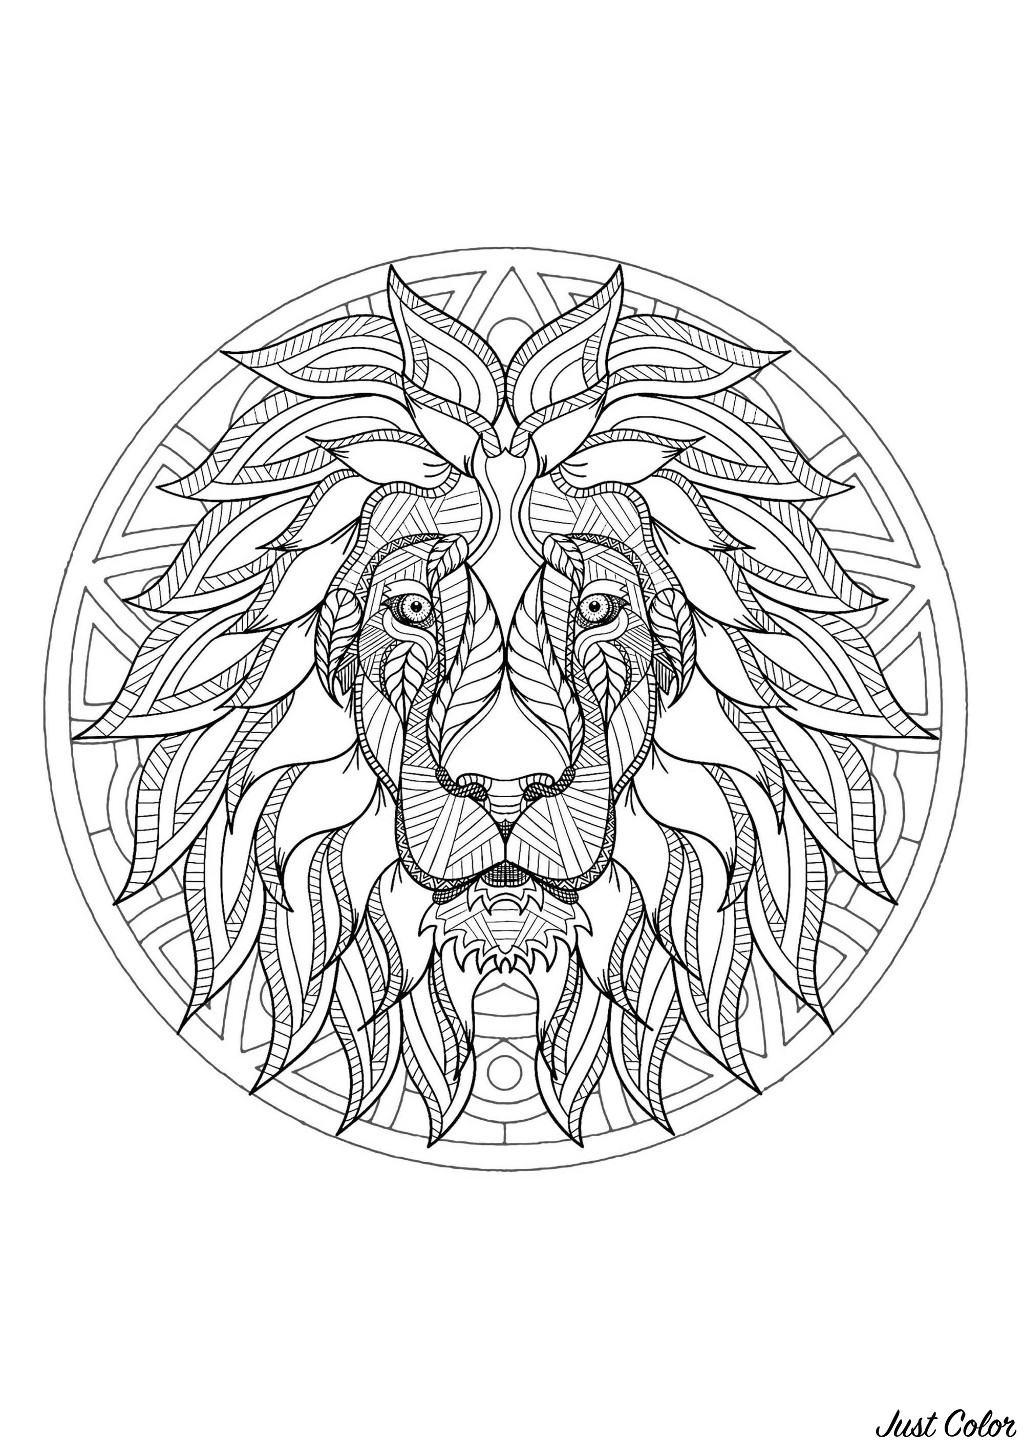 Mandala to color with beautiful Lion head and simple patterns in background